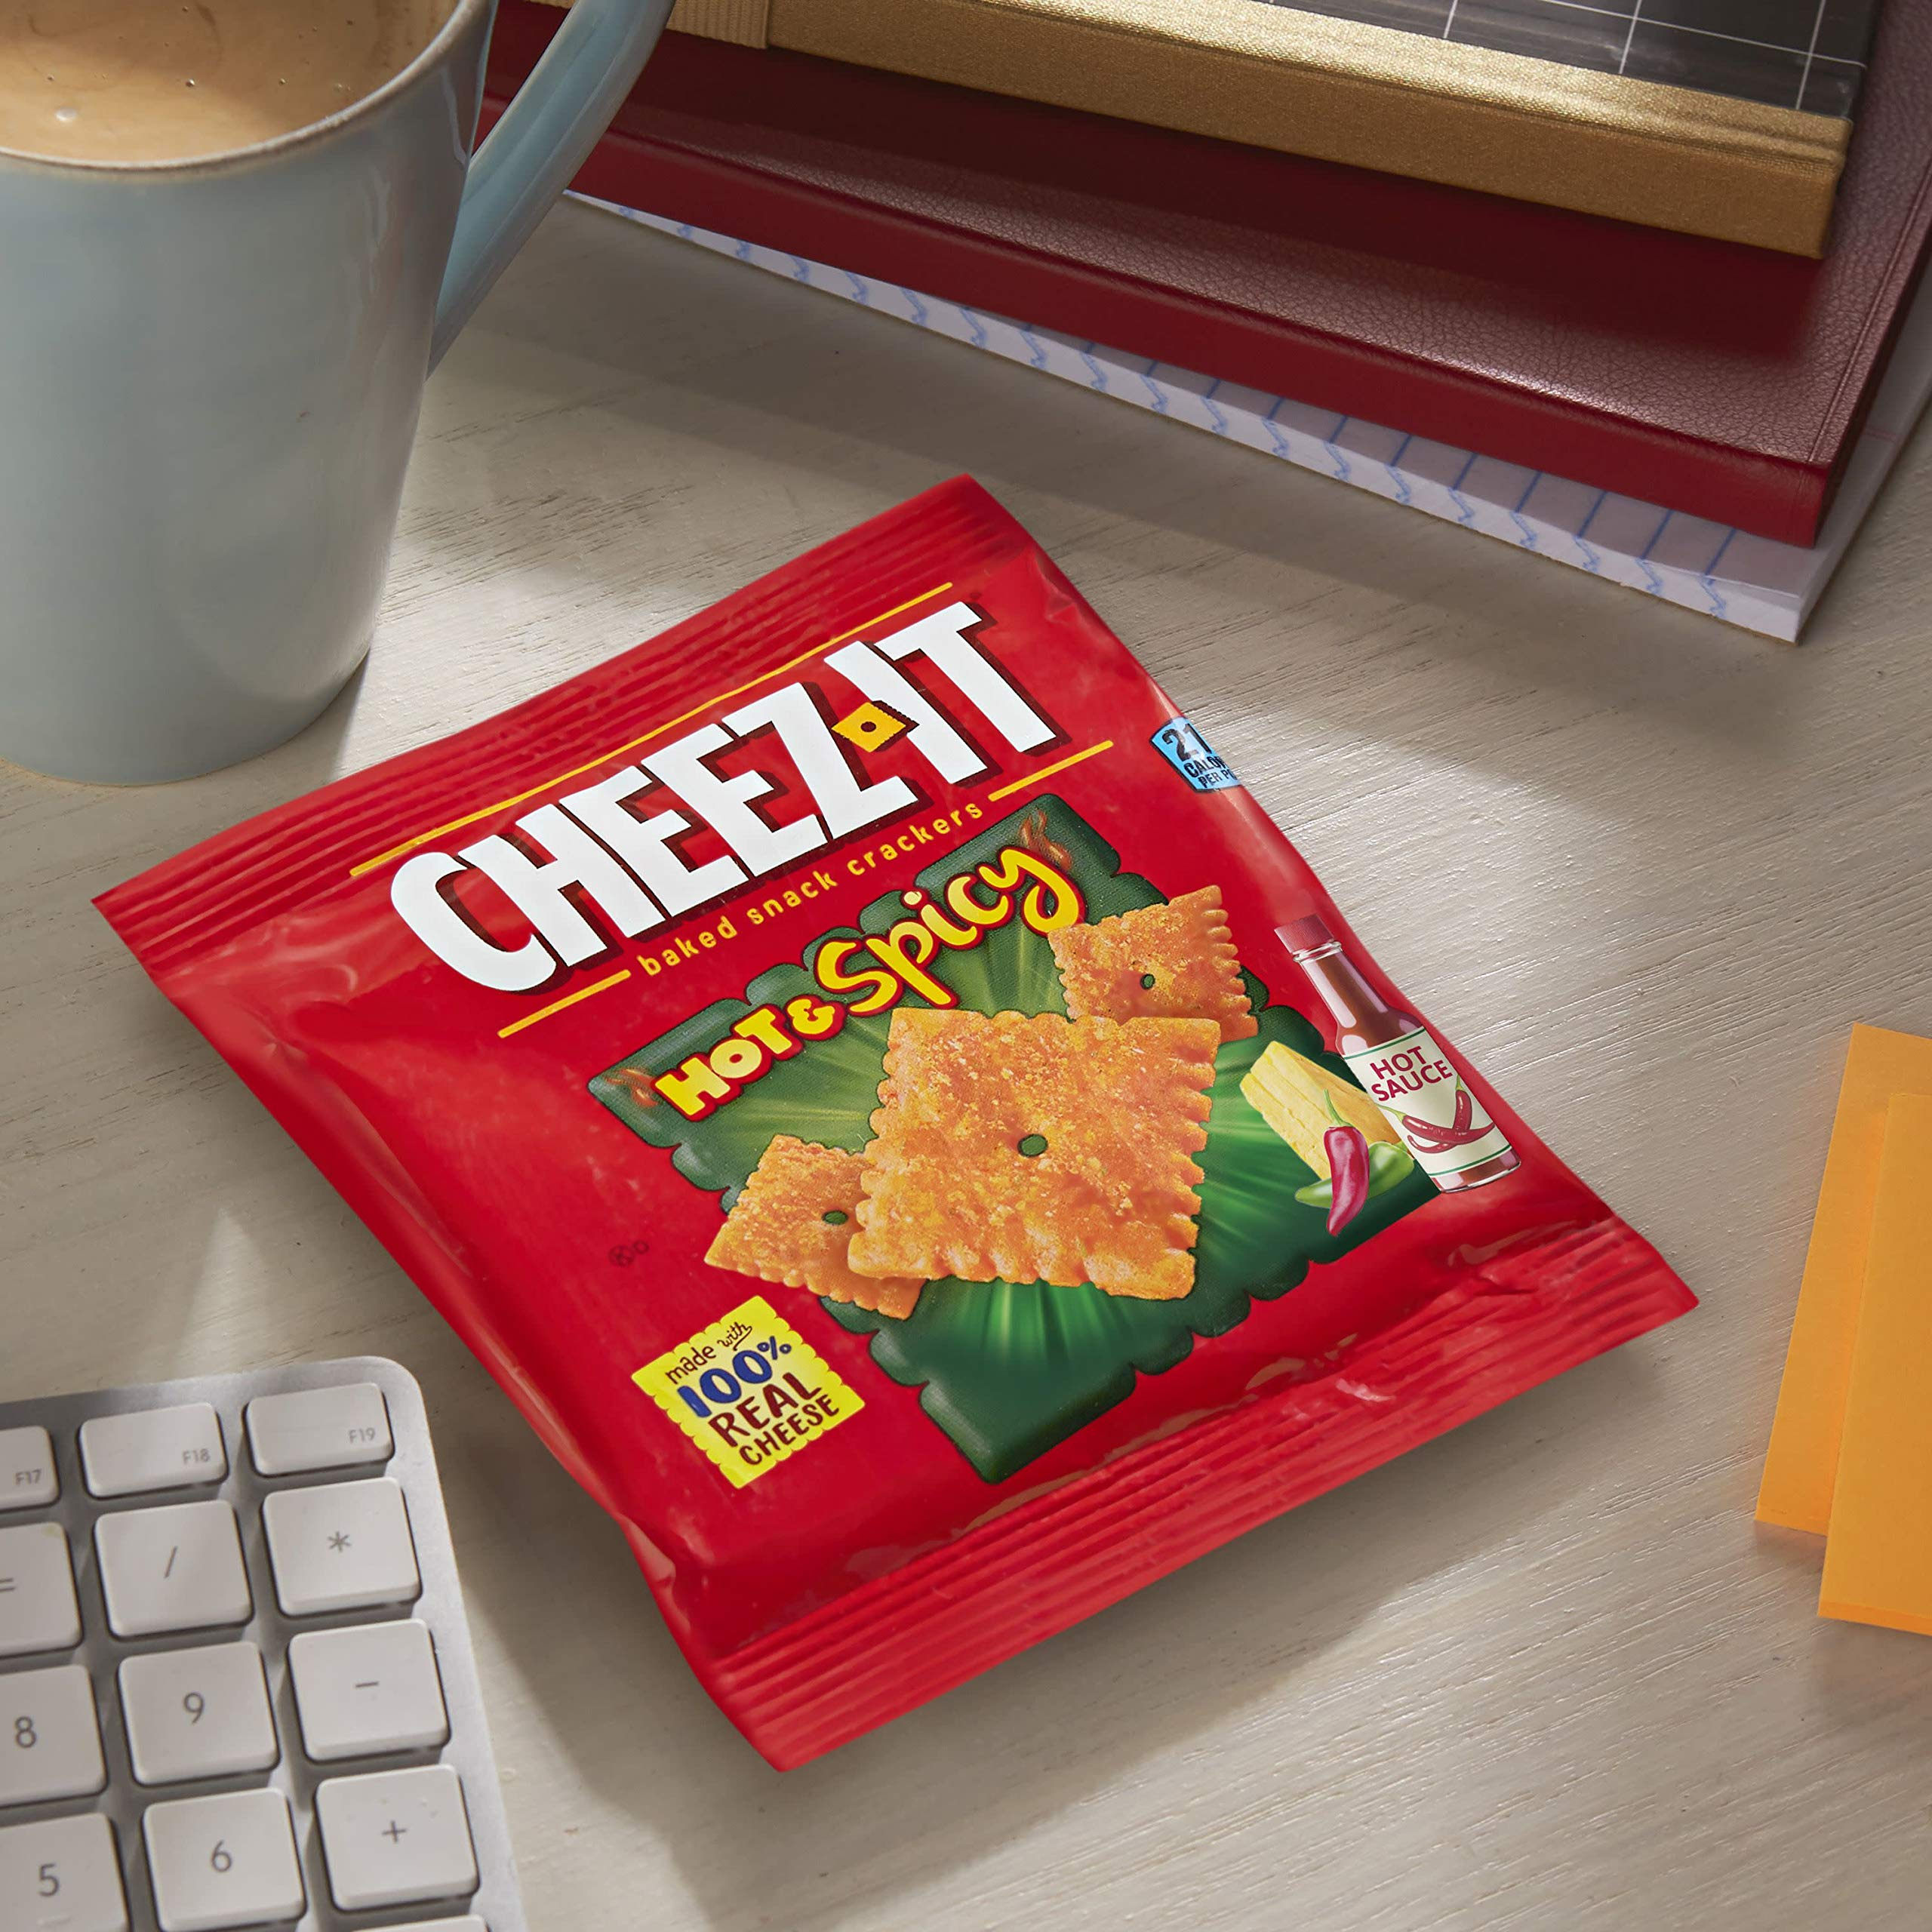 CheezIt Hot and Spicy (Pack of 60) by Cheez-It (Image #4)